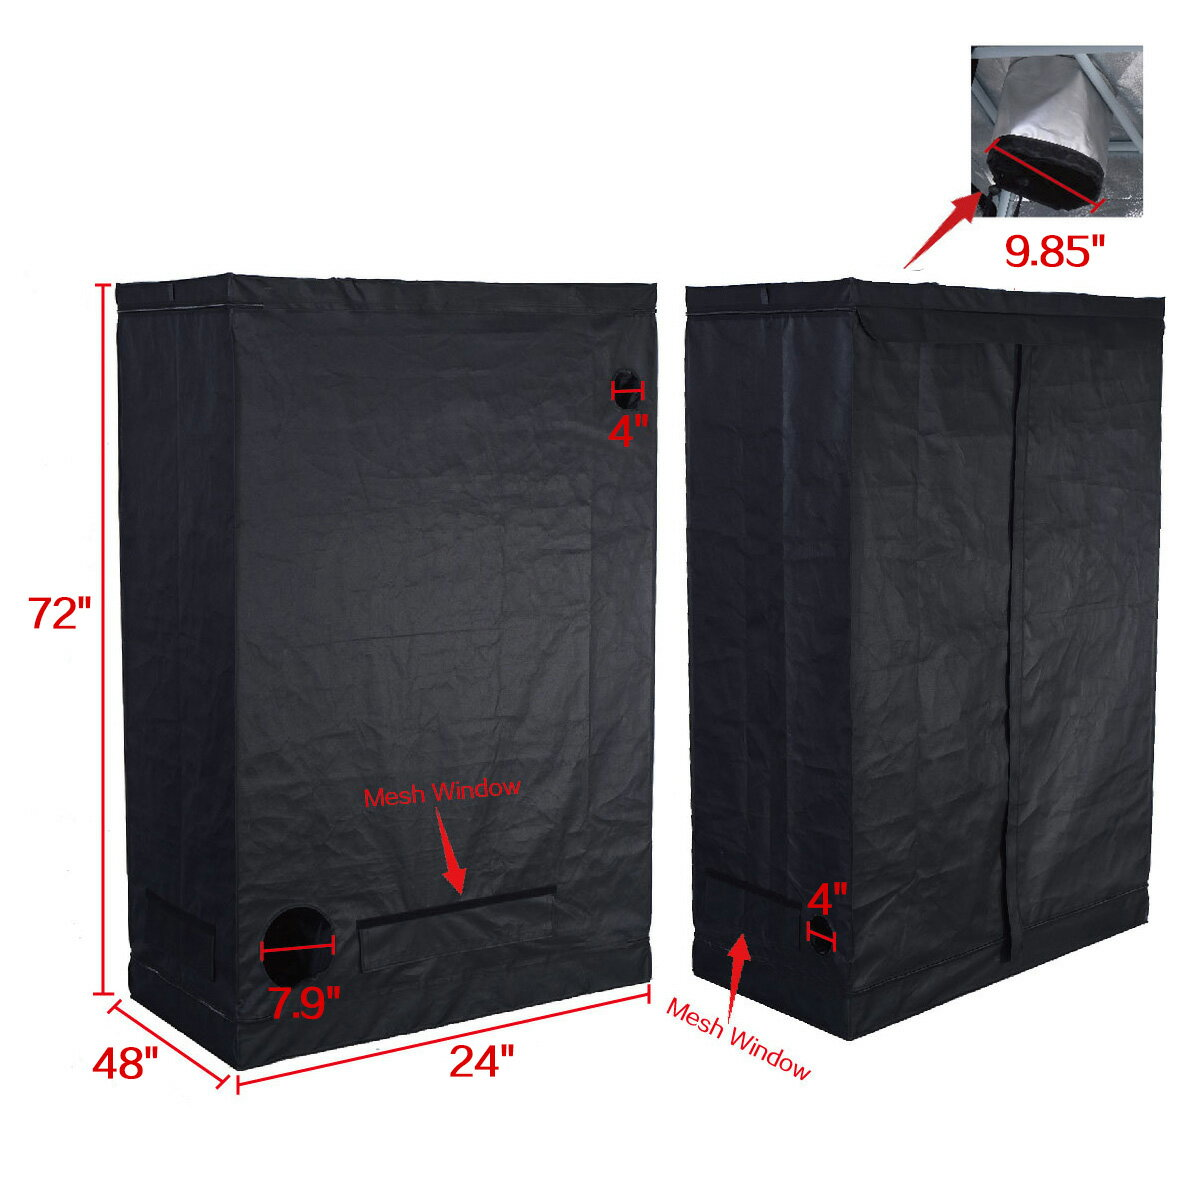 Costway Indoor Grow Tent Room Reflective Hydroponic Non Toxic Clone Hut 6 Size (48u0027  sc 1 st  Rakuten.com & Costway | Rakuten: Costway Indoor Grow Tent Room Reflective ...